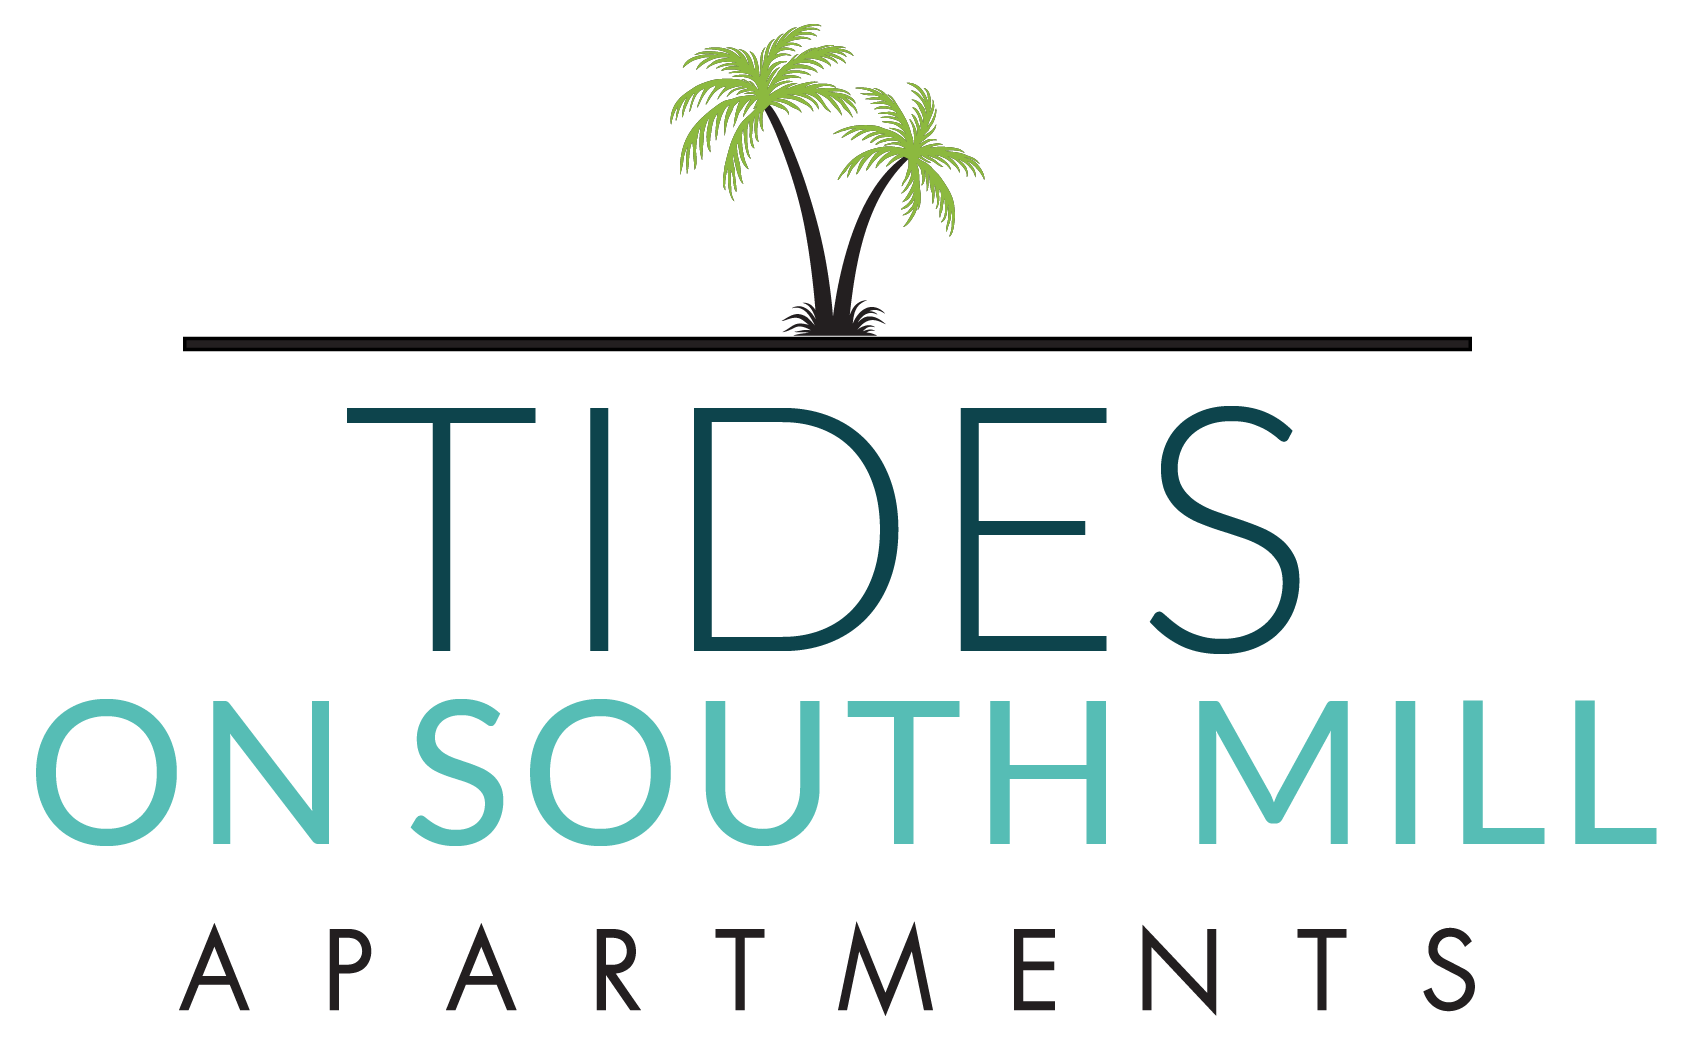 Tides on South Mill Logo